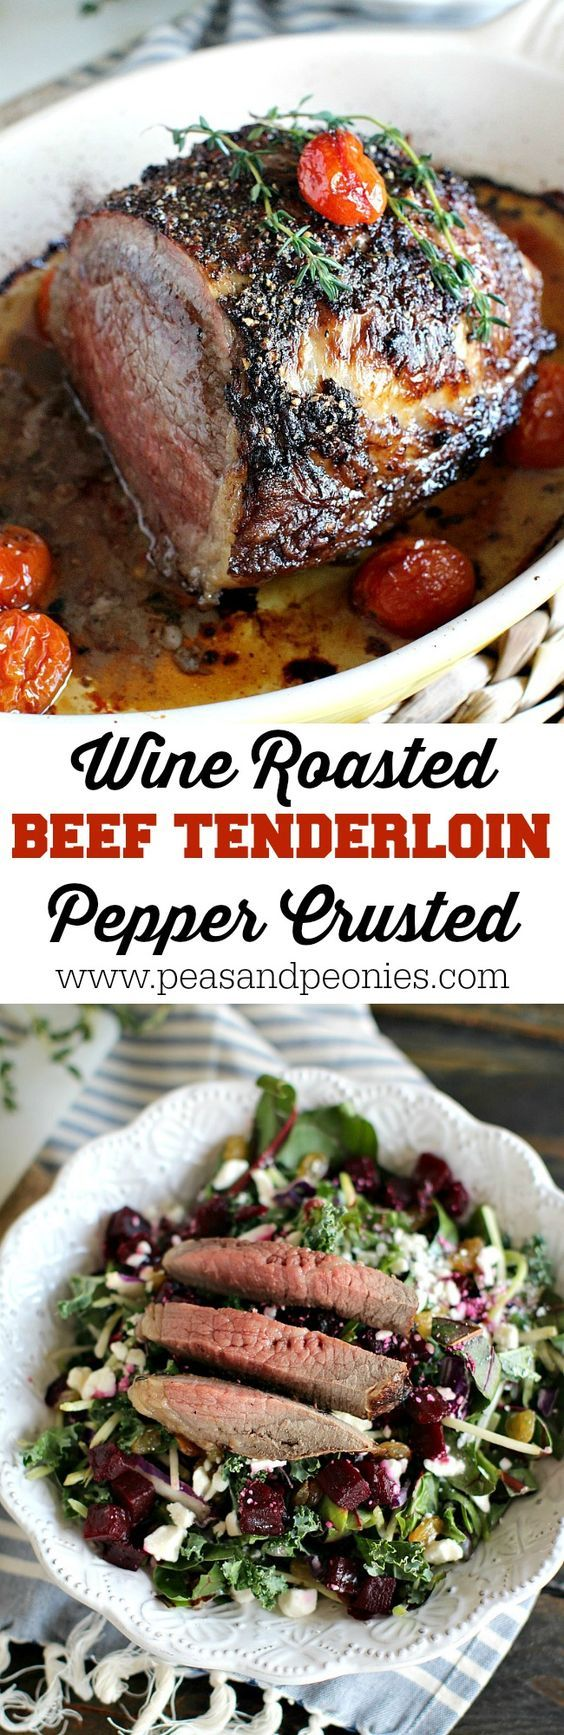 Garlic and Wine Roasted Beef Tenderloin with a peppery crust is served with juicy roasted tomatoes and Eat Smart Beets